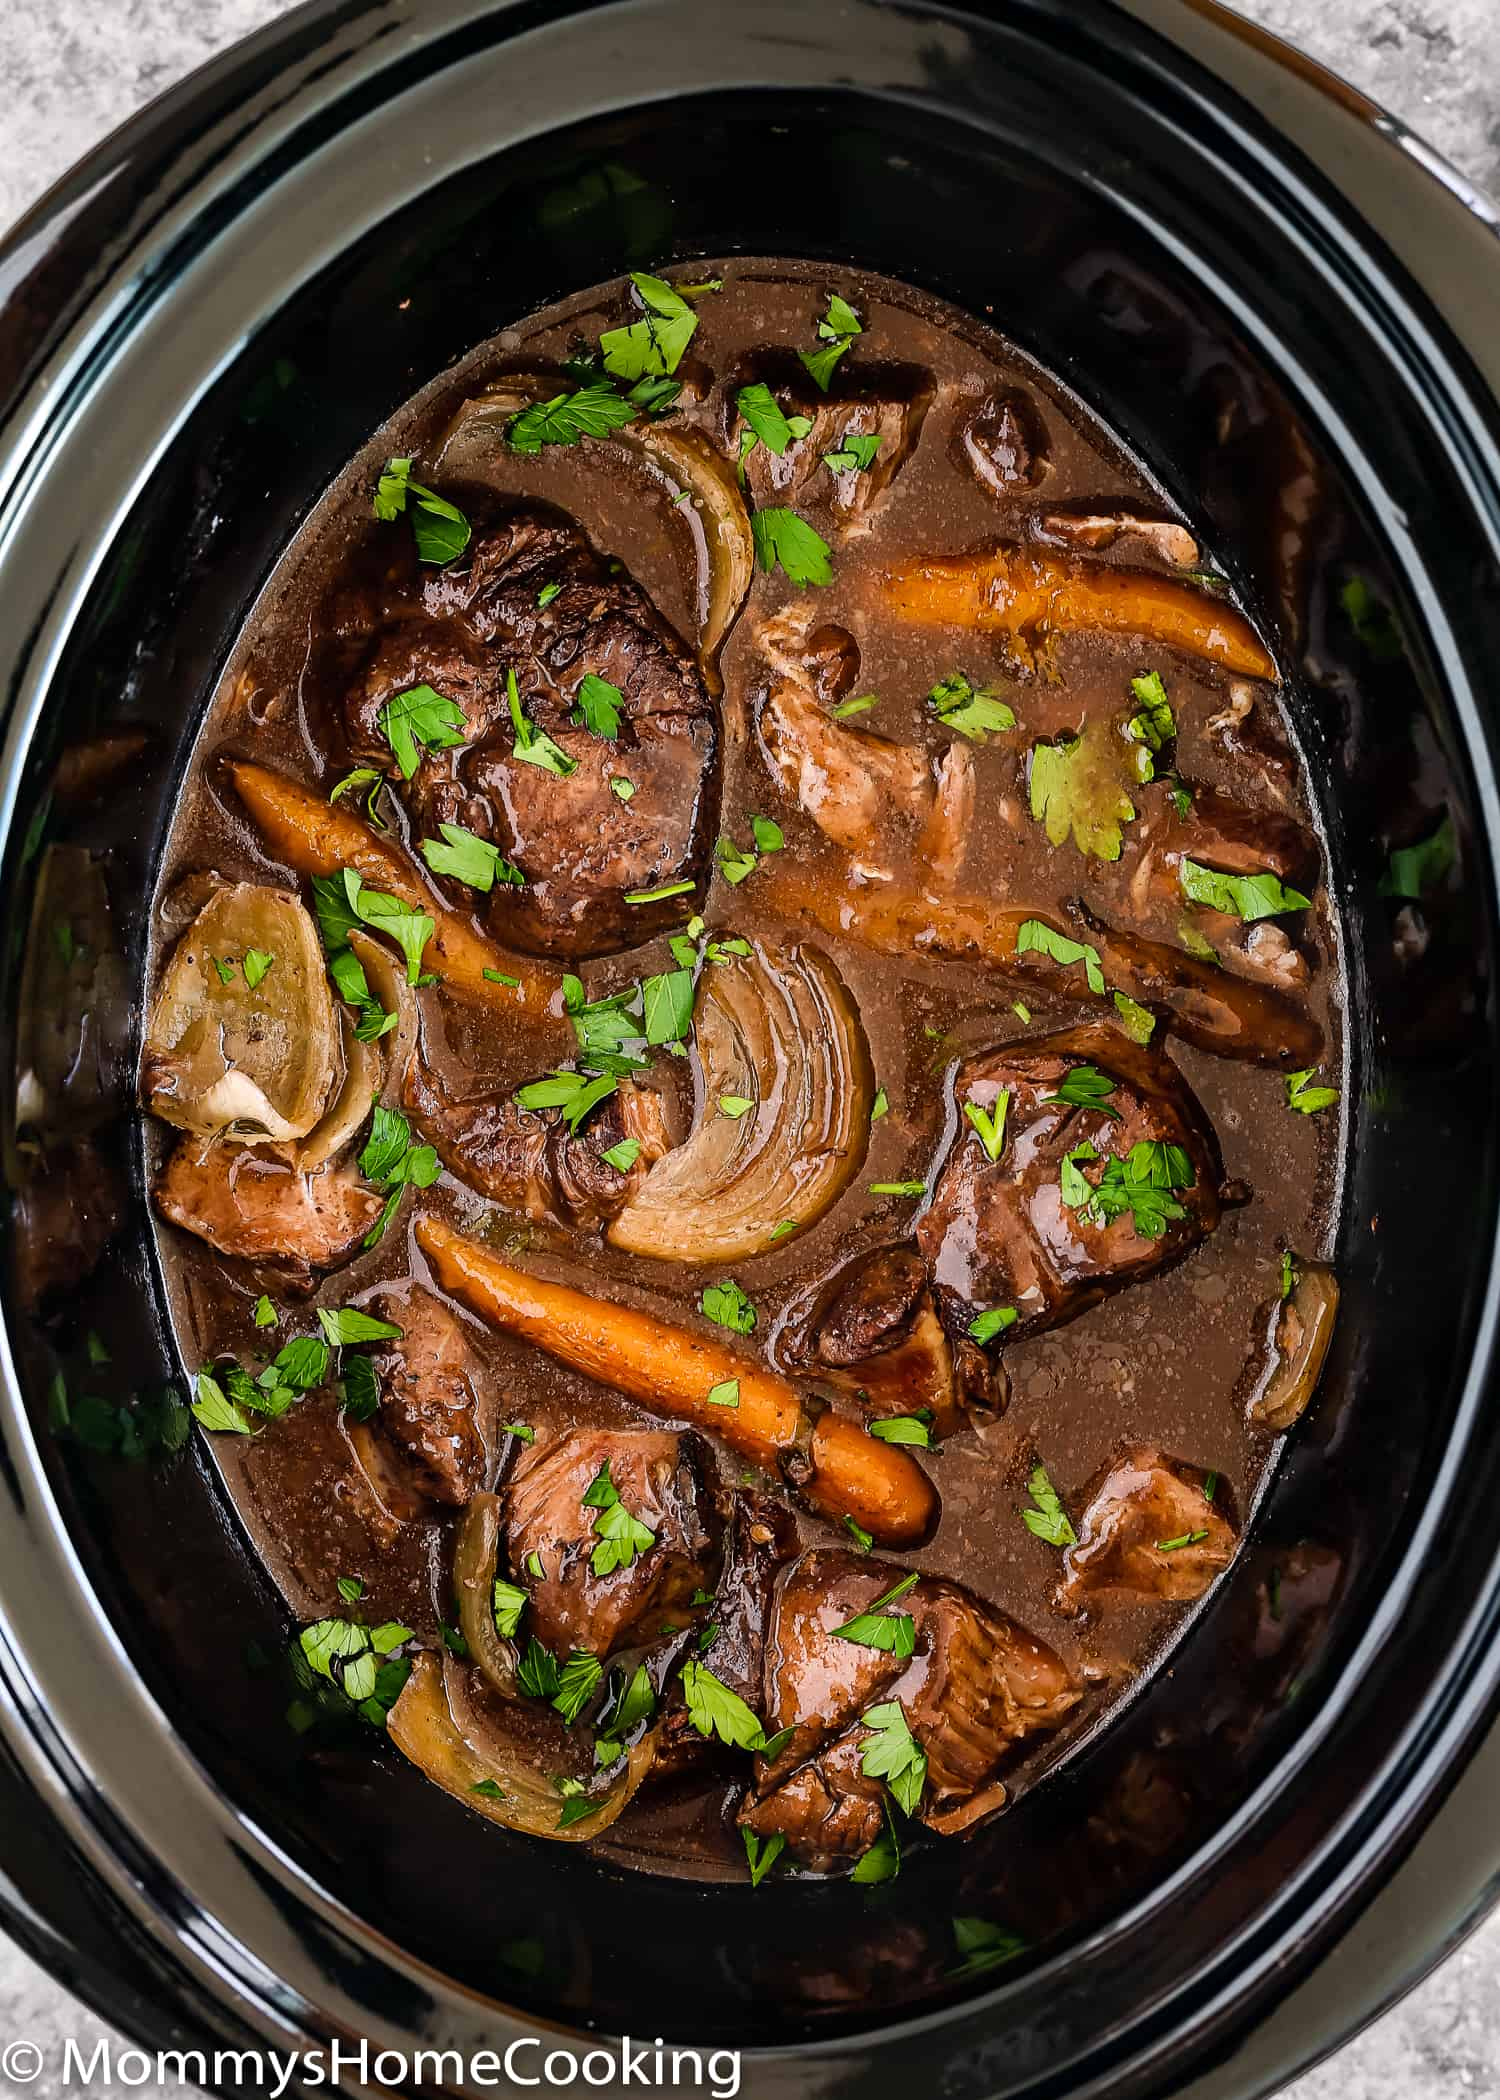 This Slow Cooker Red Wine Hind Shank is rich, hearty and super satisfying. Cook it in a slow cooker for really tender meat, this classic beef stew is enveloped in a tasty, deeply red wine flavored sauce. https://mommyshomecooking.com